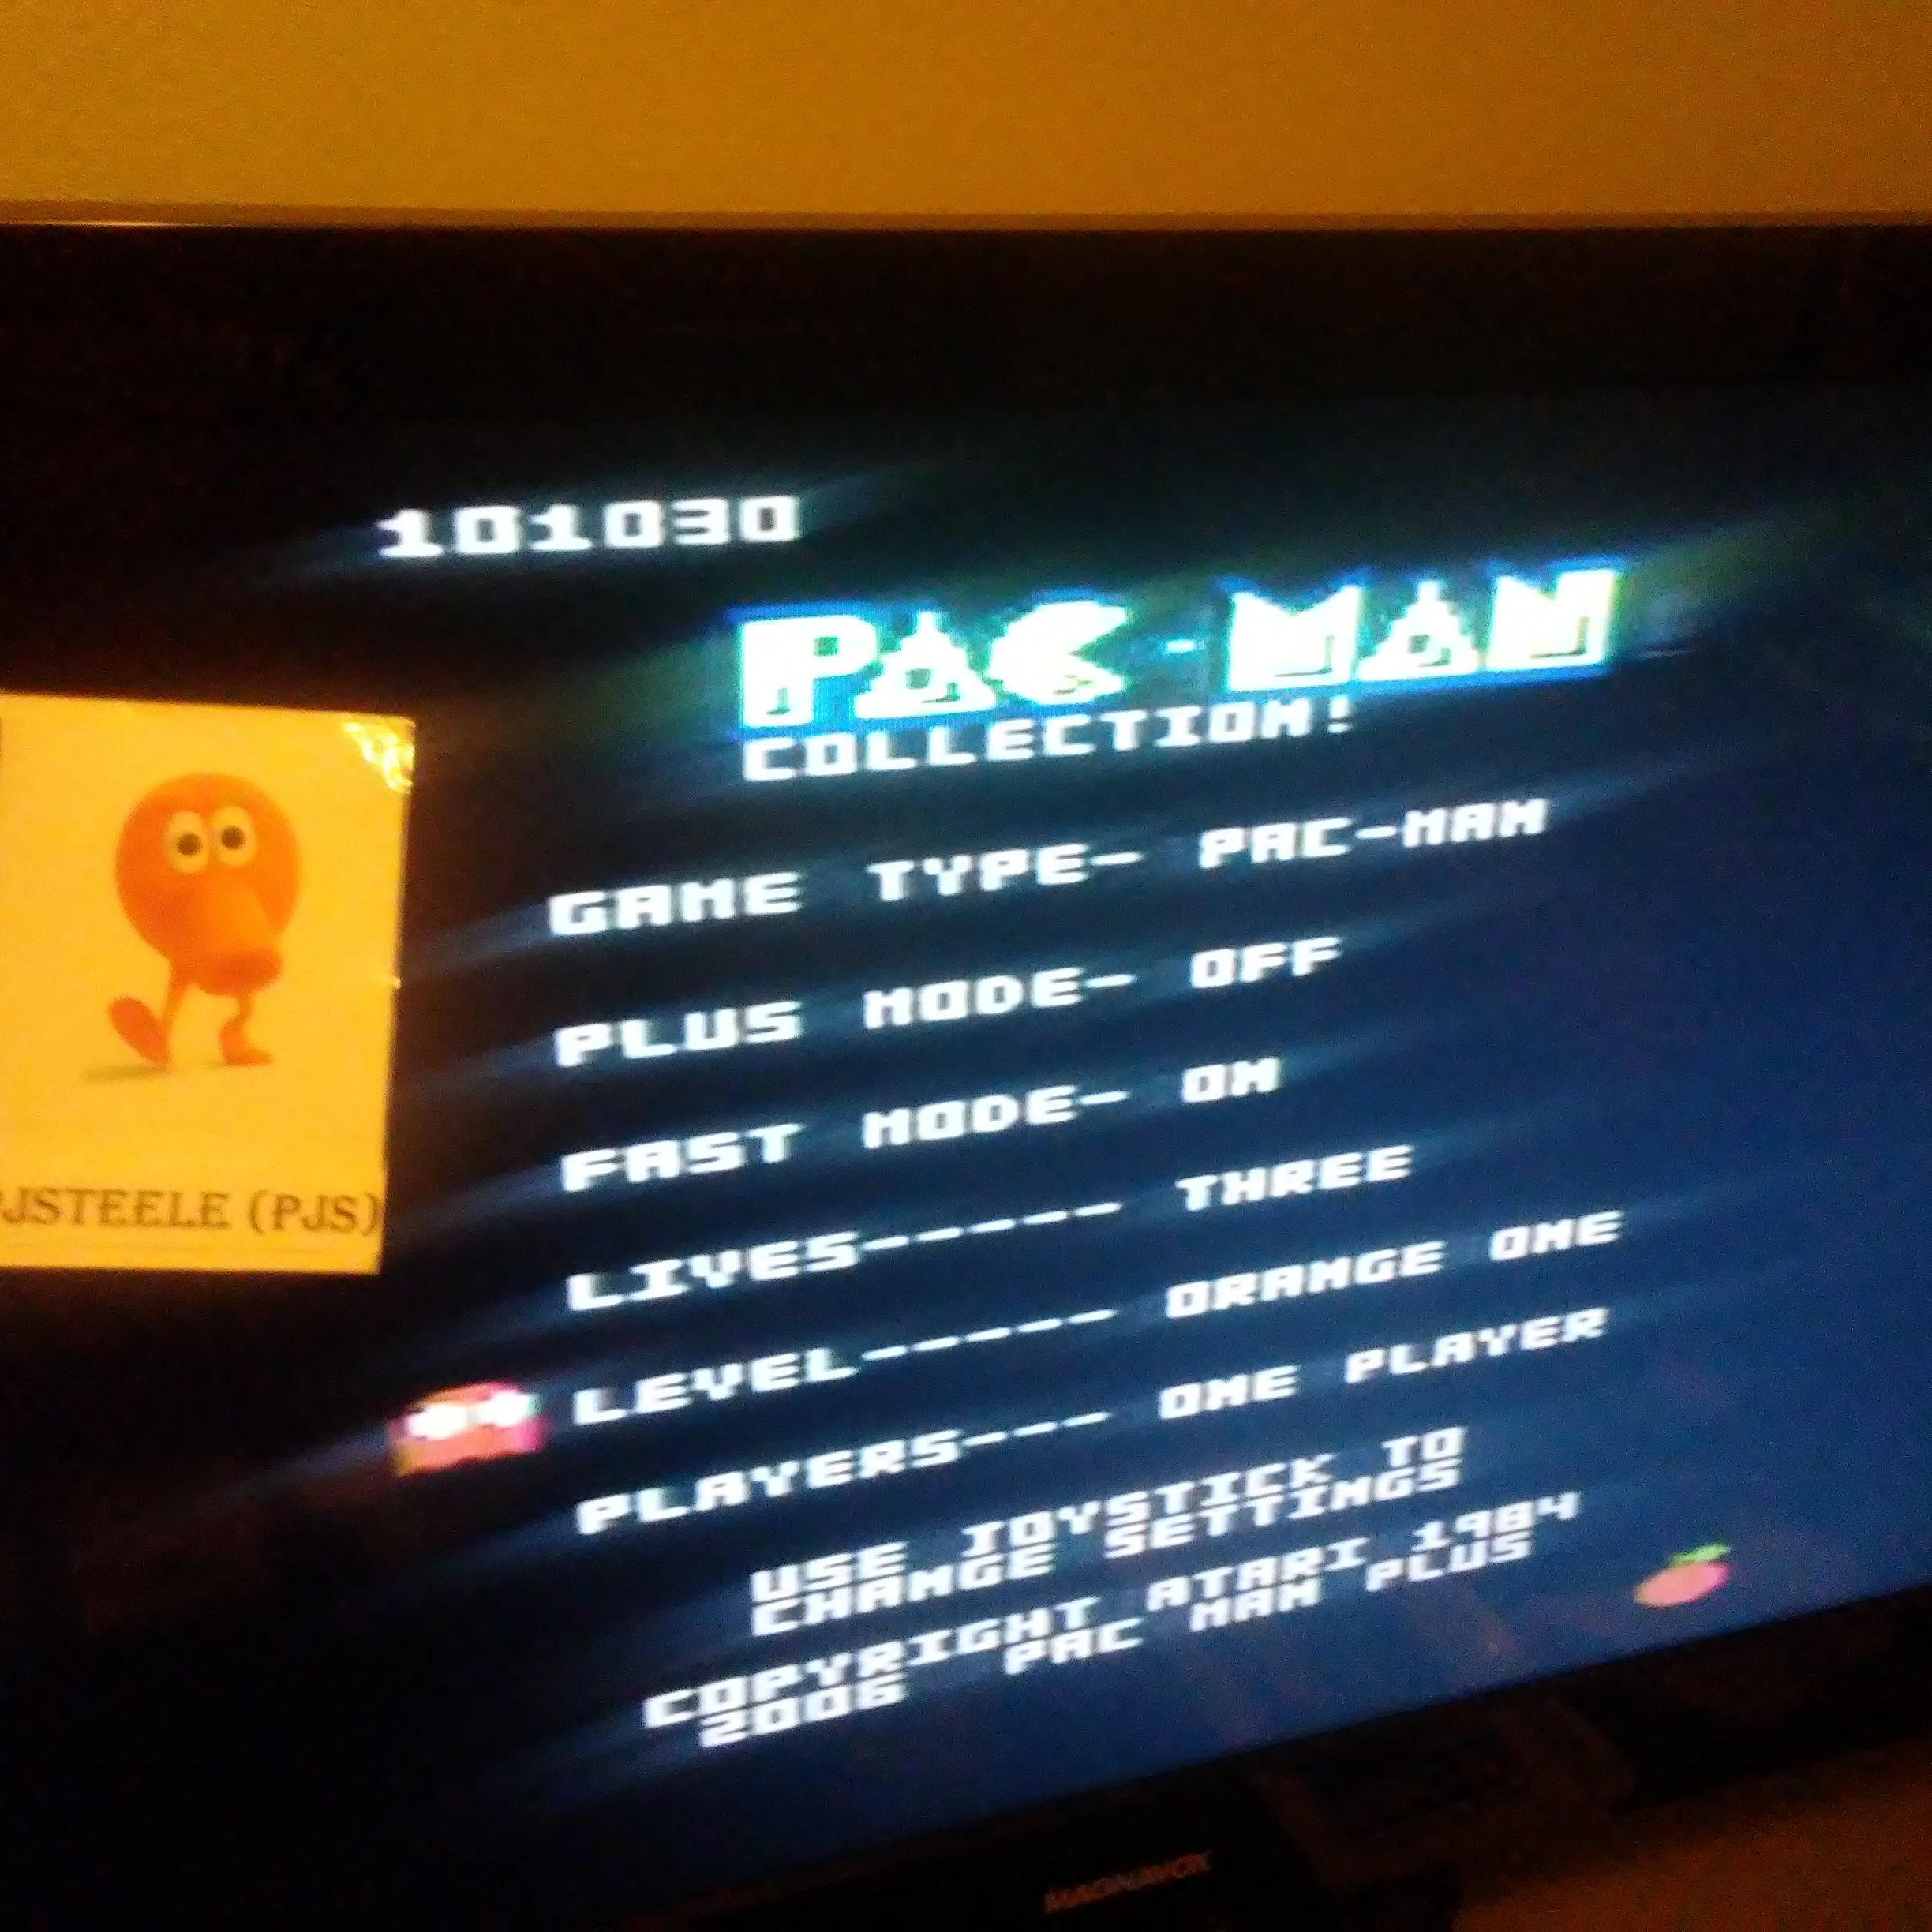 Pjsteele: Pac-Man Collection: Pac-Man [Orange One/Plus Off/Fast On] (Atari 7800) 101,030 points on 2018-09-21 17:14:30